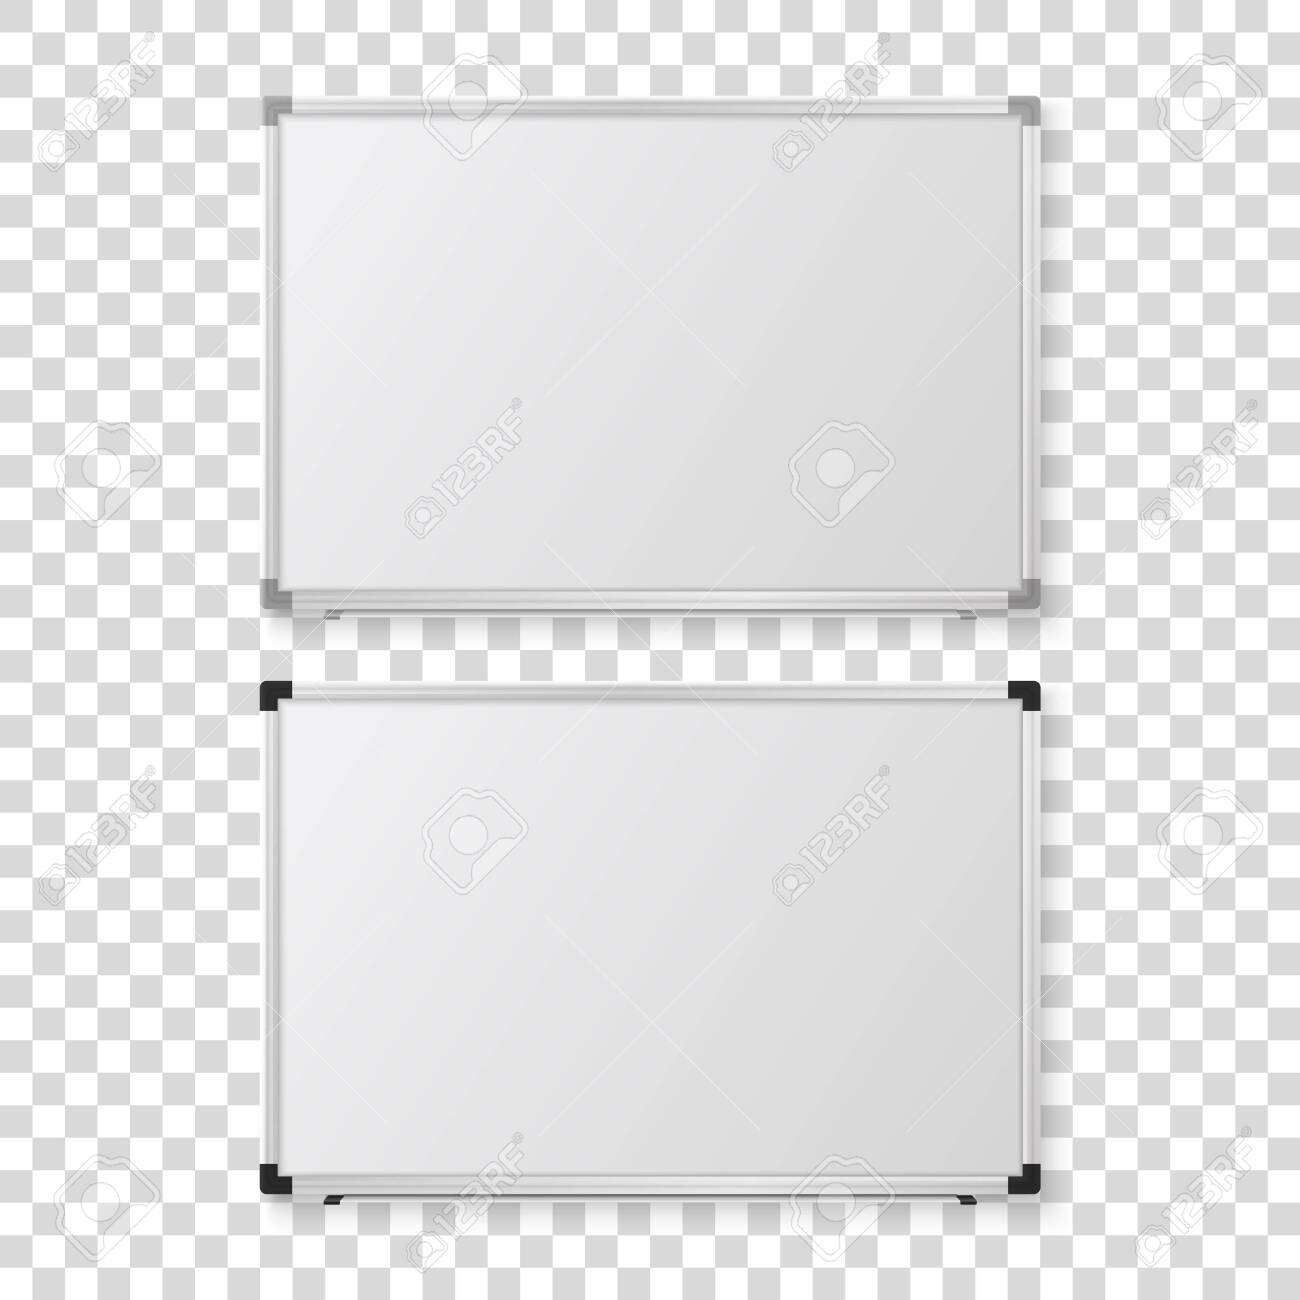 Use them in commercial designs under lifetime,. Vector 3d Realistic Blank Magnetic Whiteboard With Marker Round Magnets And Board Sponge Set Closeup Isolated Design Template For Mockup Presentations Training Education Concept Royalty Free Cliparts Vectors And Stock Illustration Image